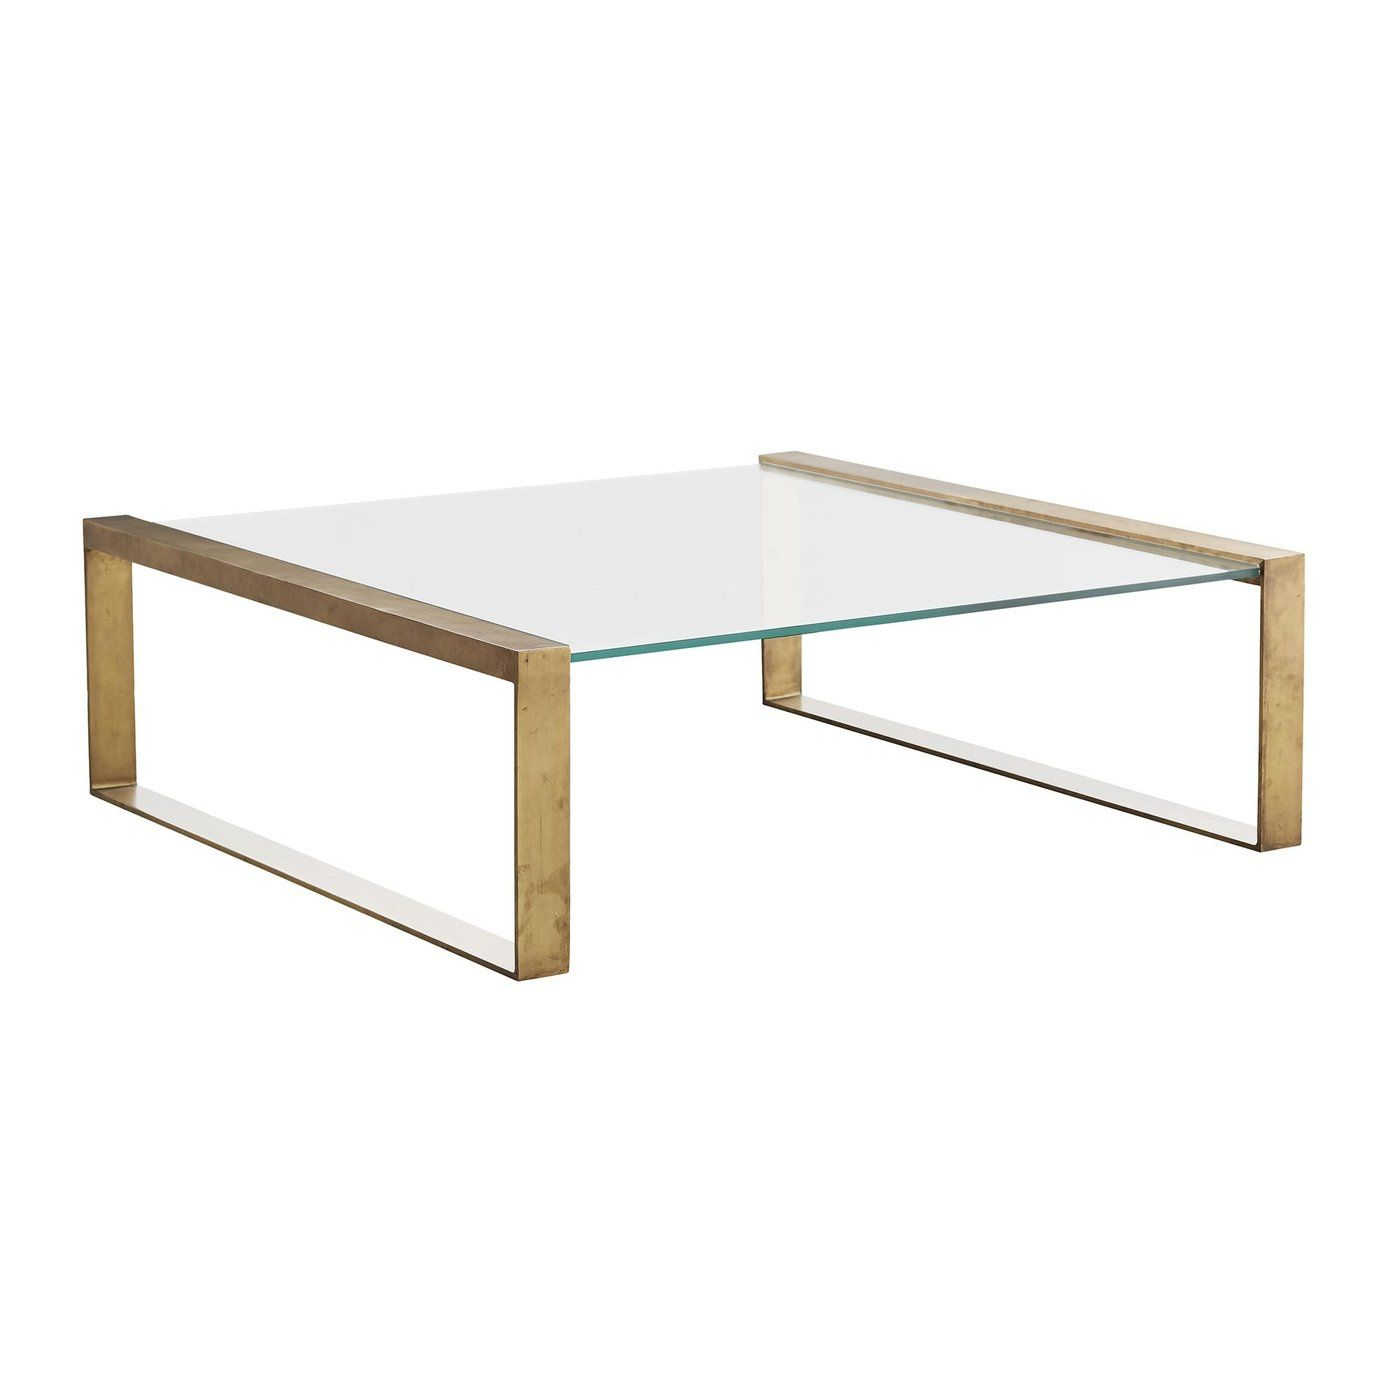 Arteriors Home Jocelyn Coffee Table Antique Brass Coffee Table Antique Kitchen Table Contemporary Coffee Table [ 1400 x 1400 Pixel ]